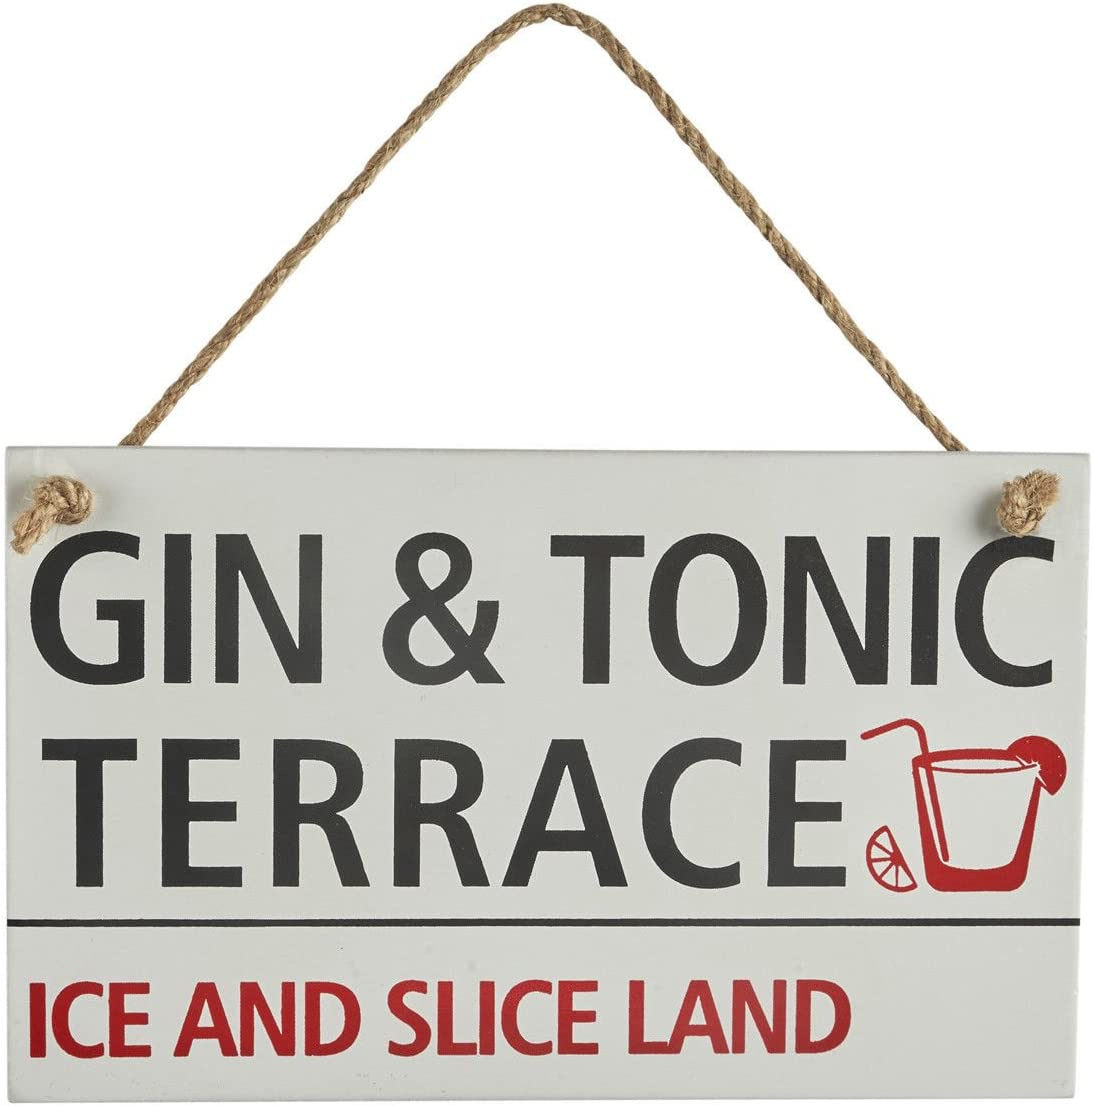 Metal plaques signs shabby chic rustic The Gin Bar mancave wall art decor gift